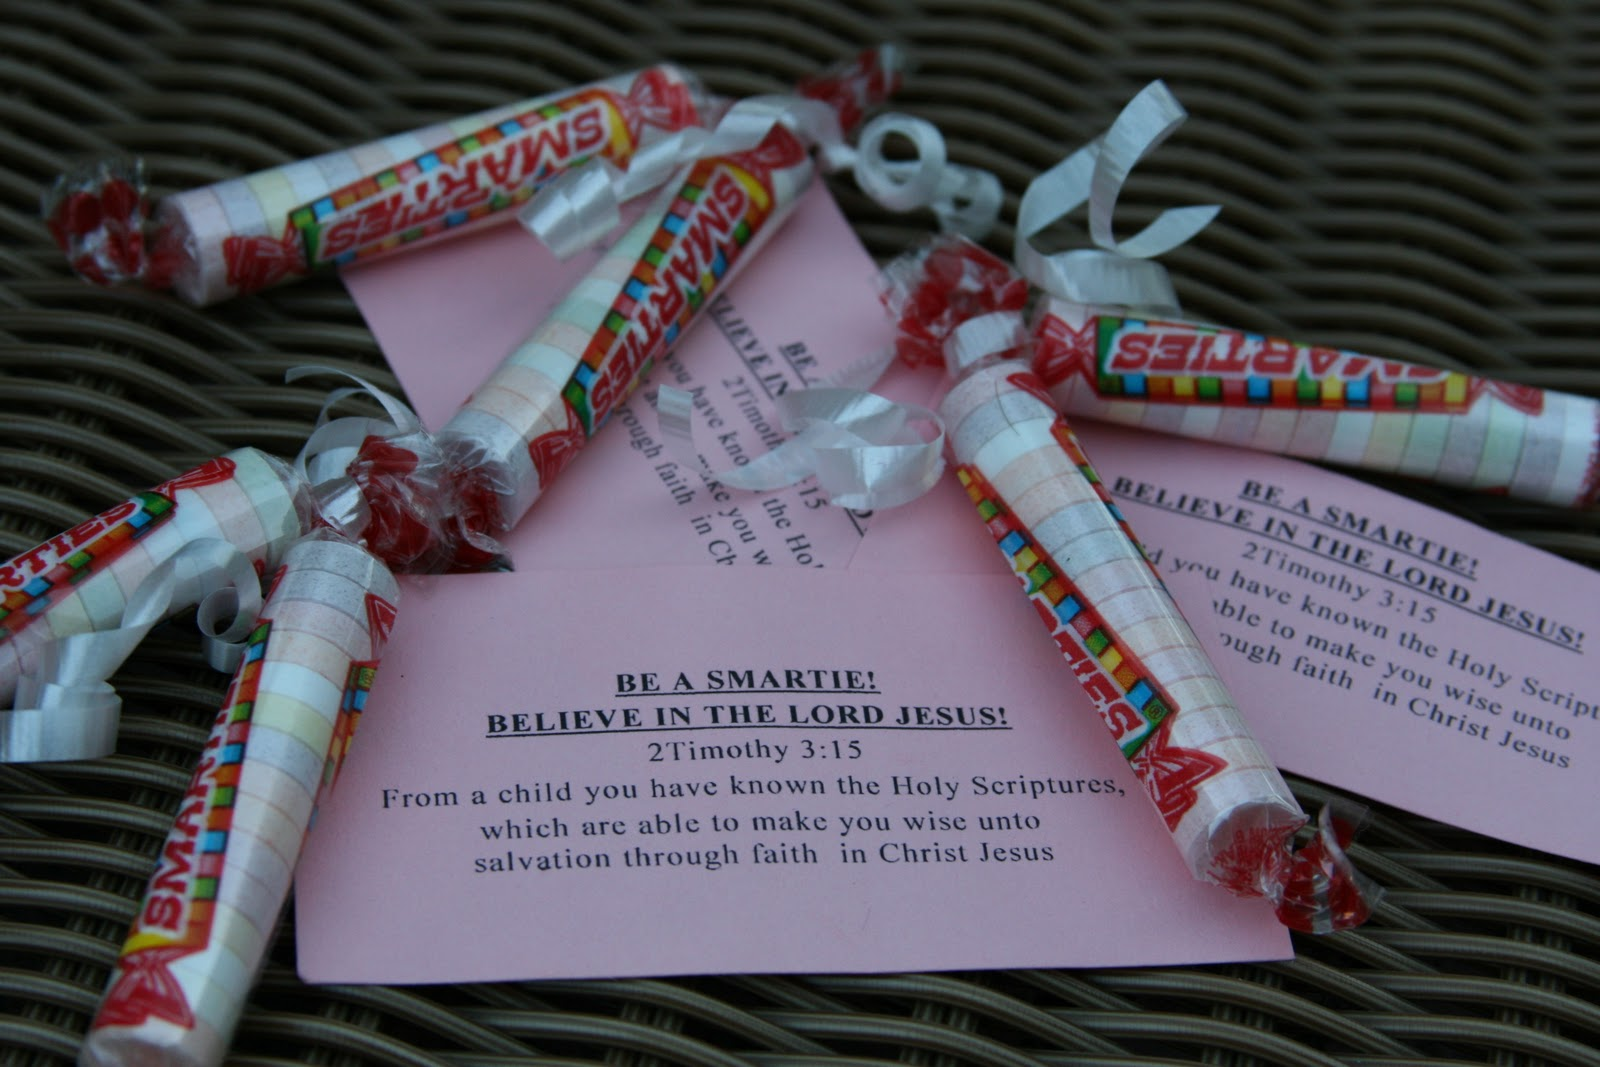 Vacation bible school crafts ideas - Wrapping Box After Box Of Nerds Can Be Challenging Tying Tiny Bows Can Drive You Crazy But They Sweetly Illustrate The Gospel Verse Ephesians 2 8